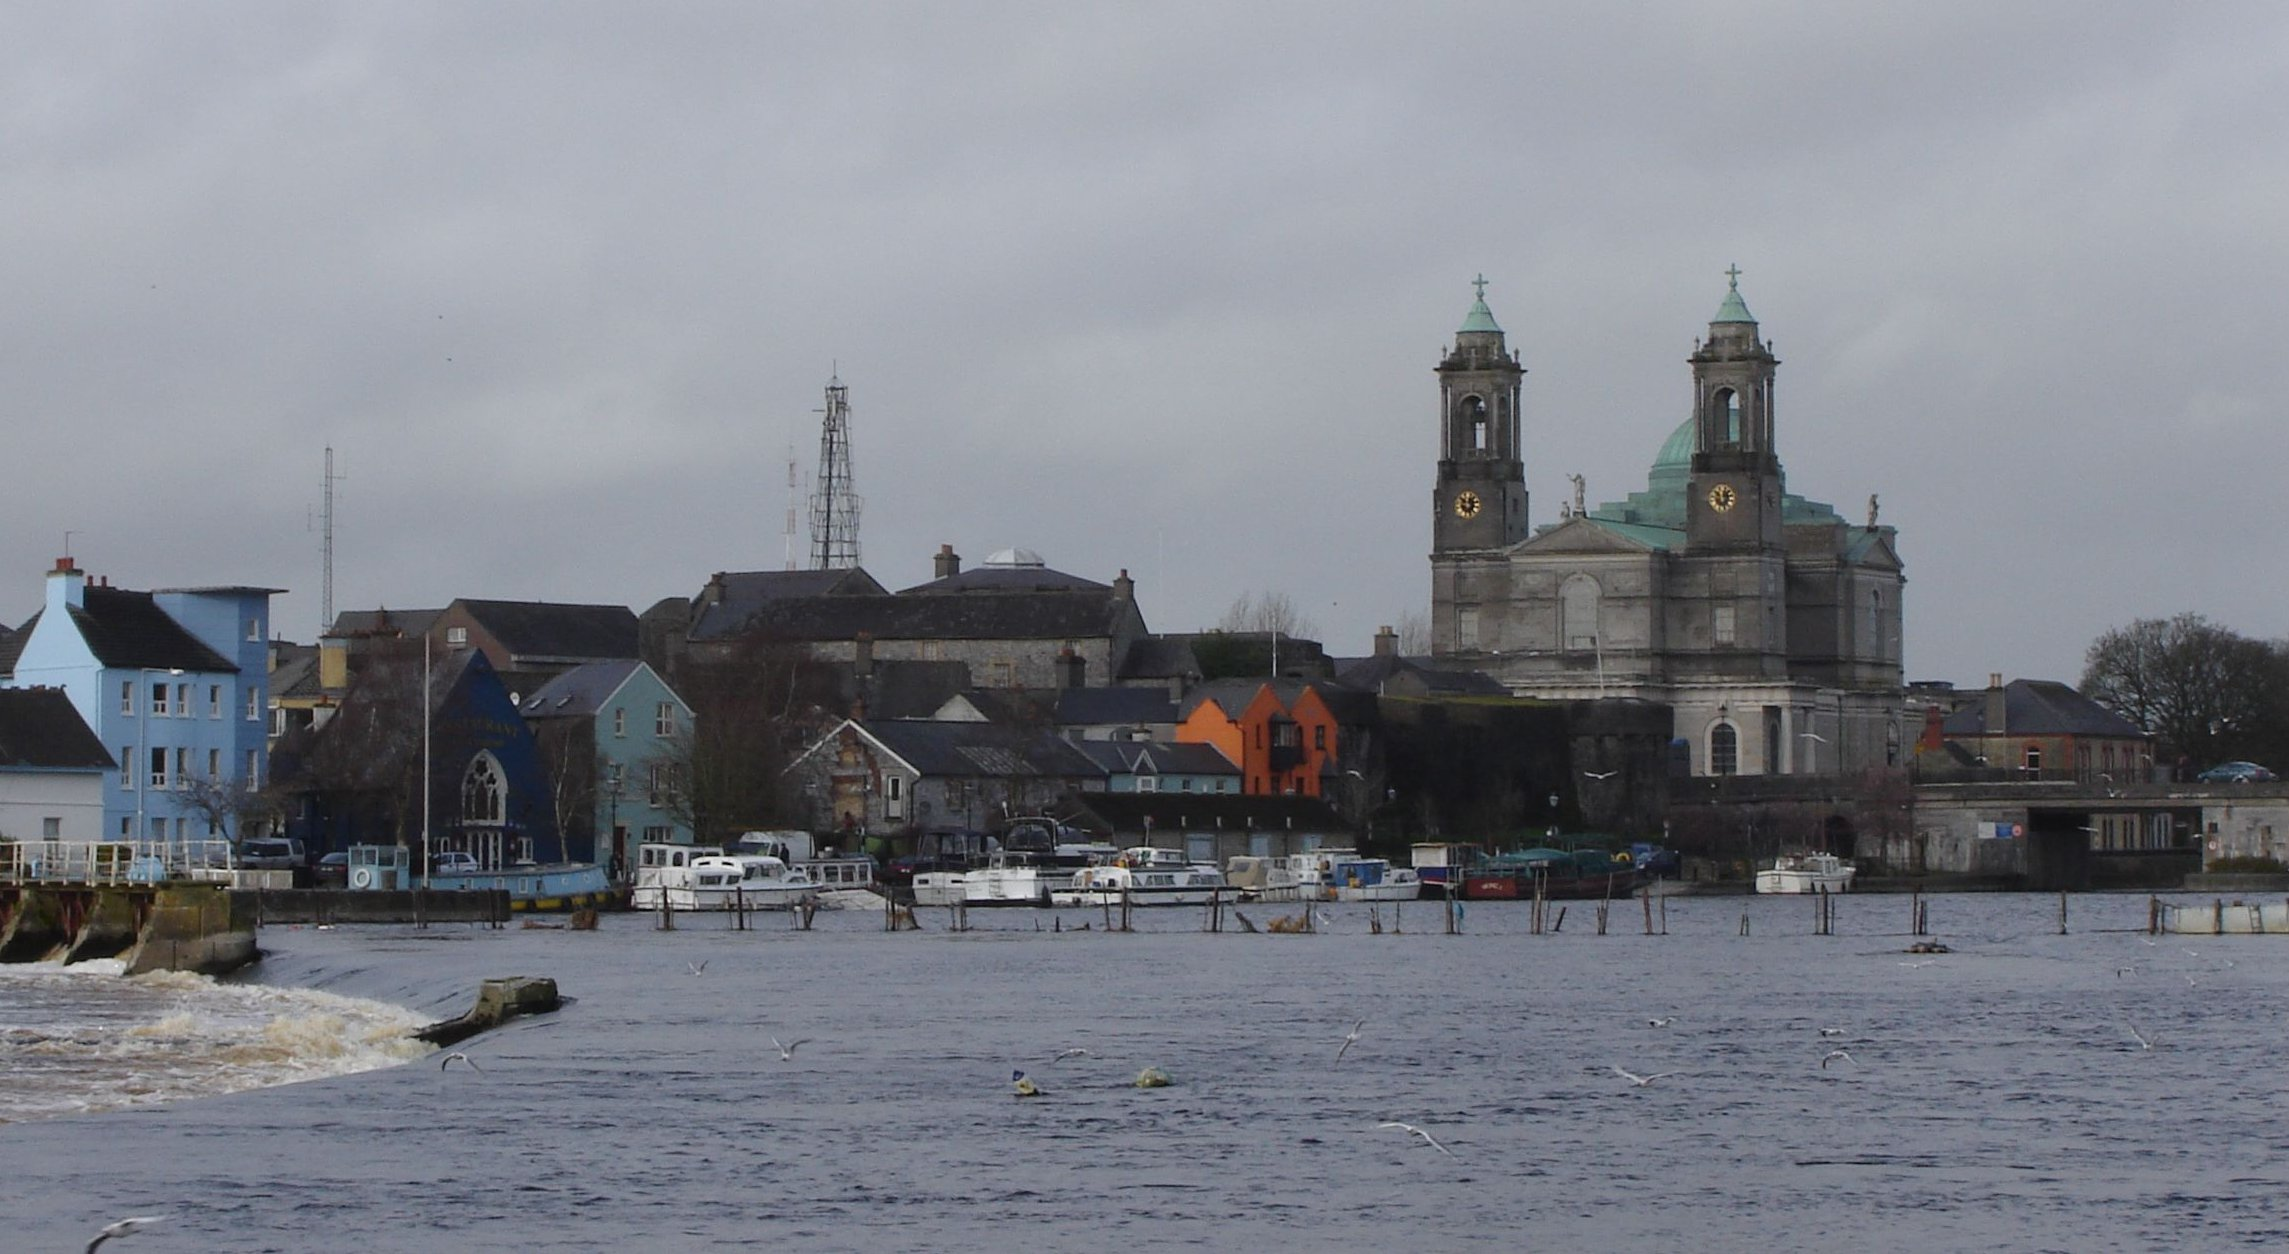 File:Athlone Ireland and river Shannon.jpg - Wikipedia, the free ...